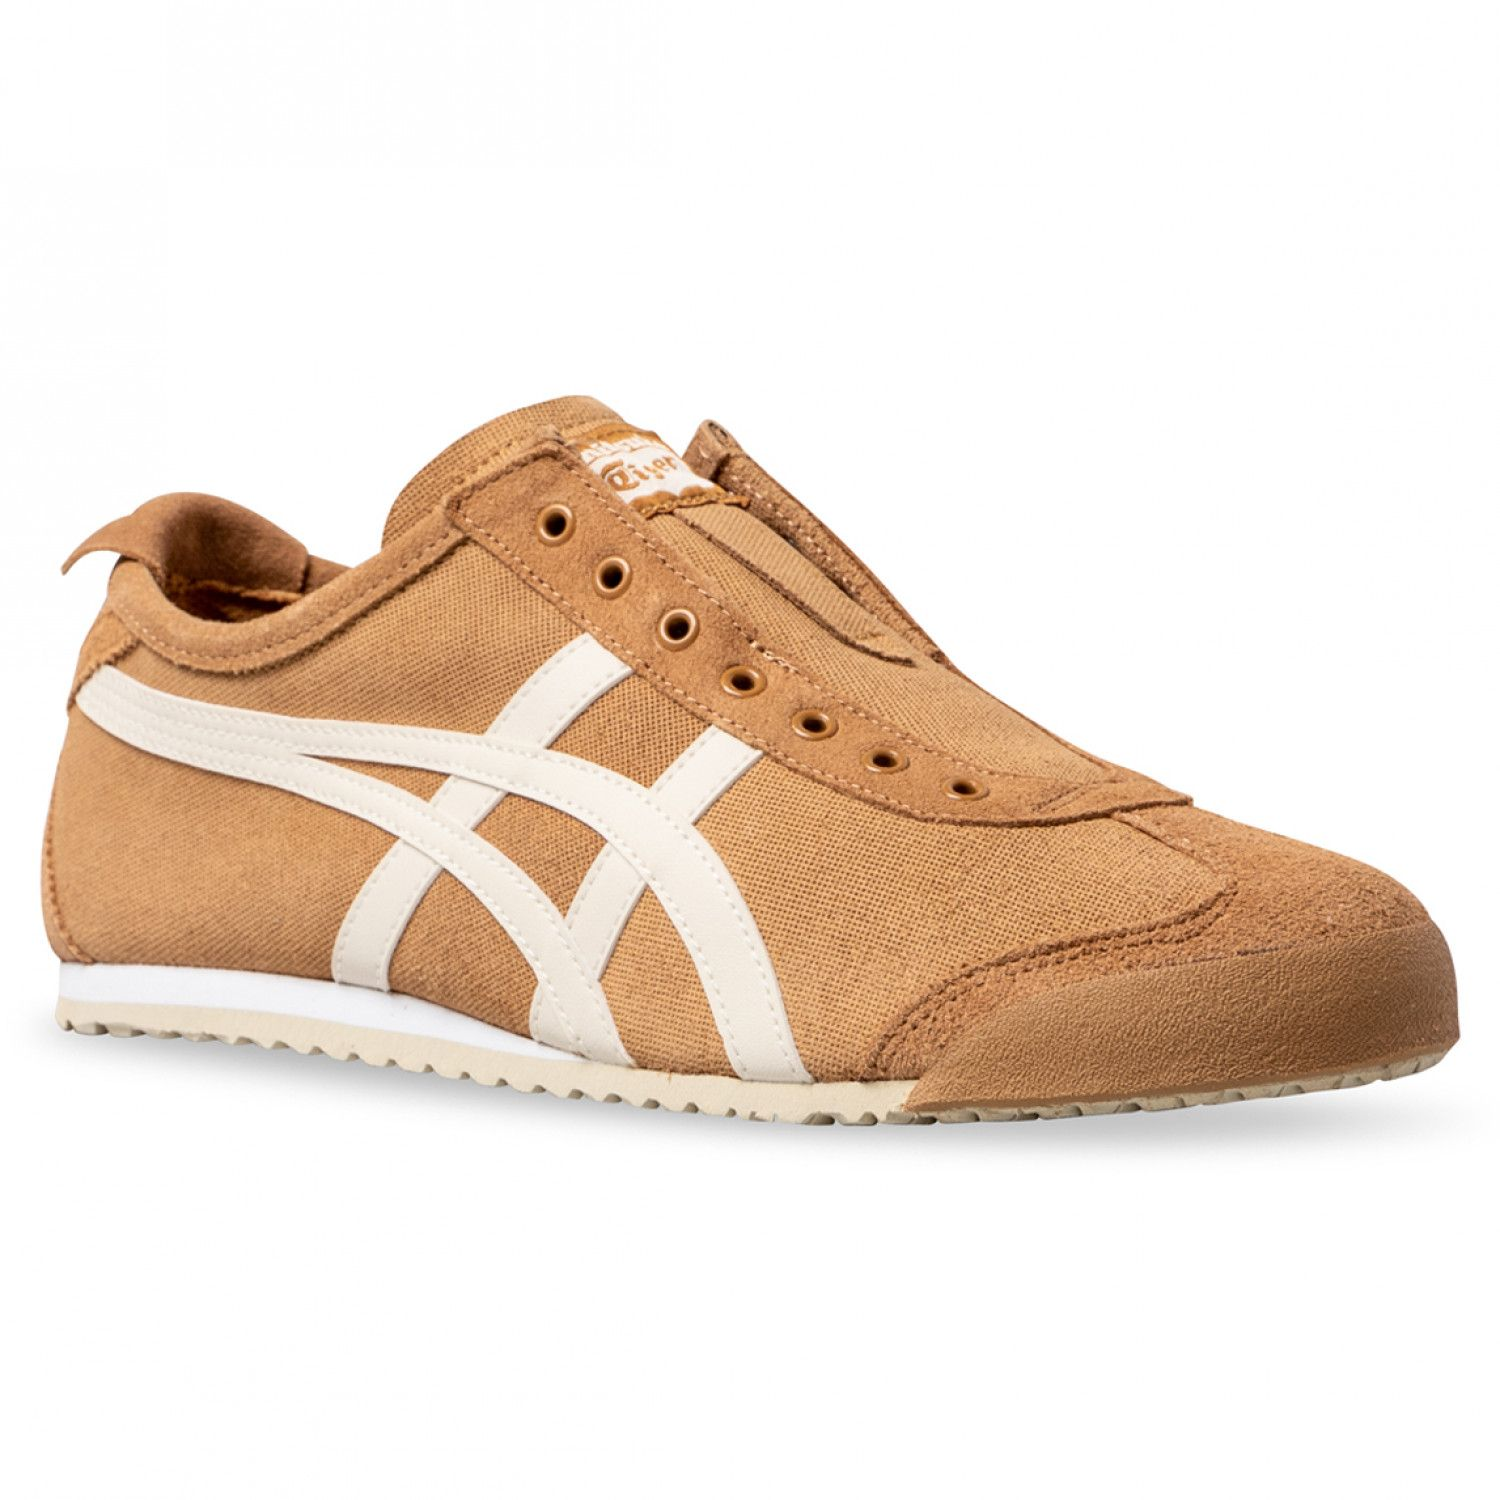 sports shoes 4ed59 caac4 Onitsuka Tiger MEXICO 66 SLIP in 2019   Shoes   Tiger mexico ...